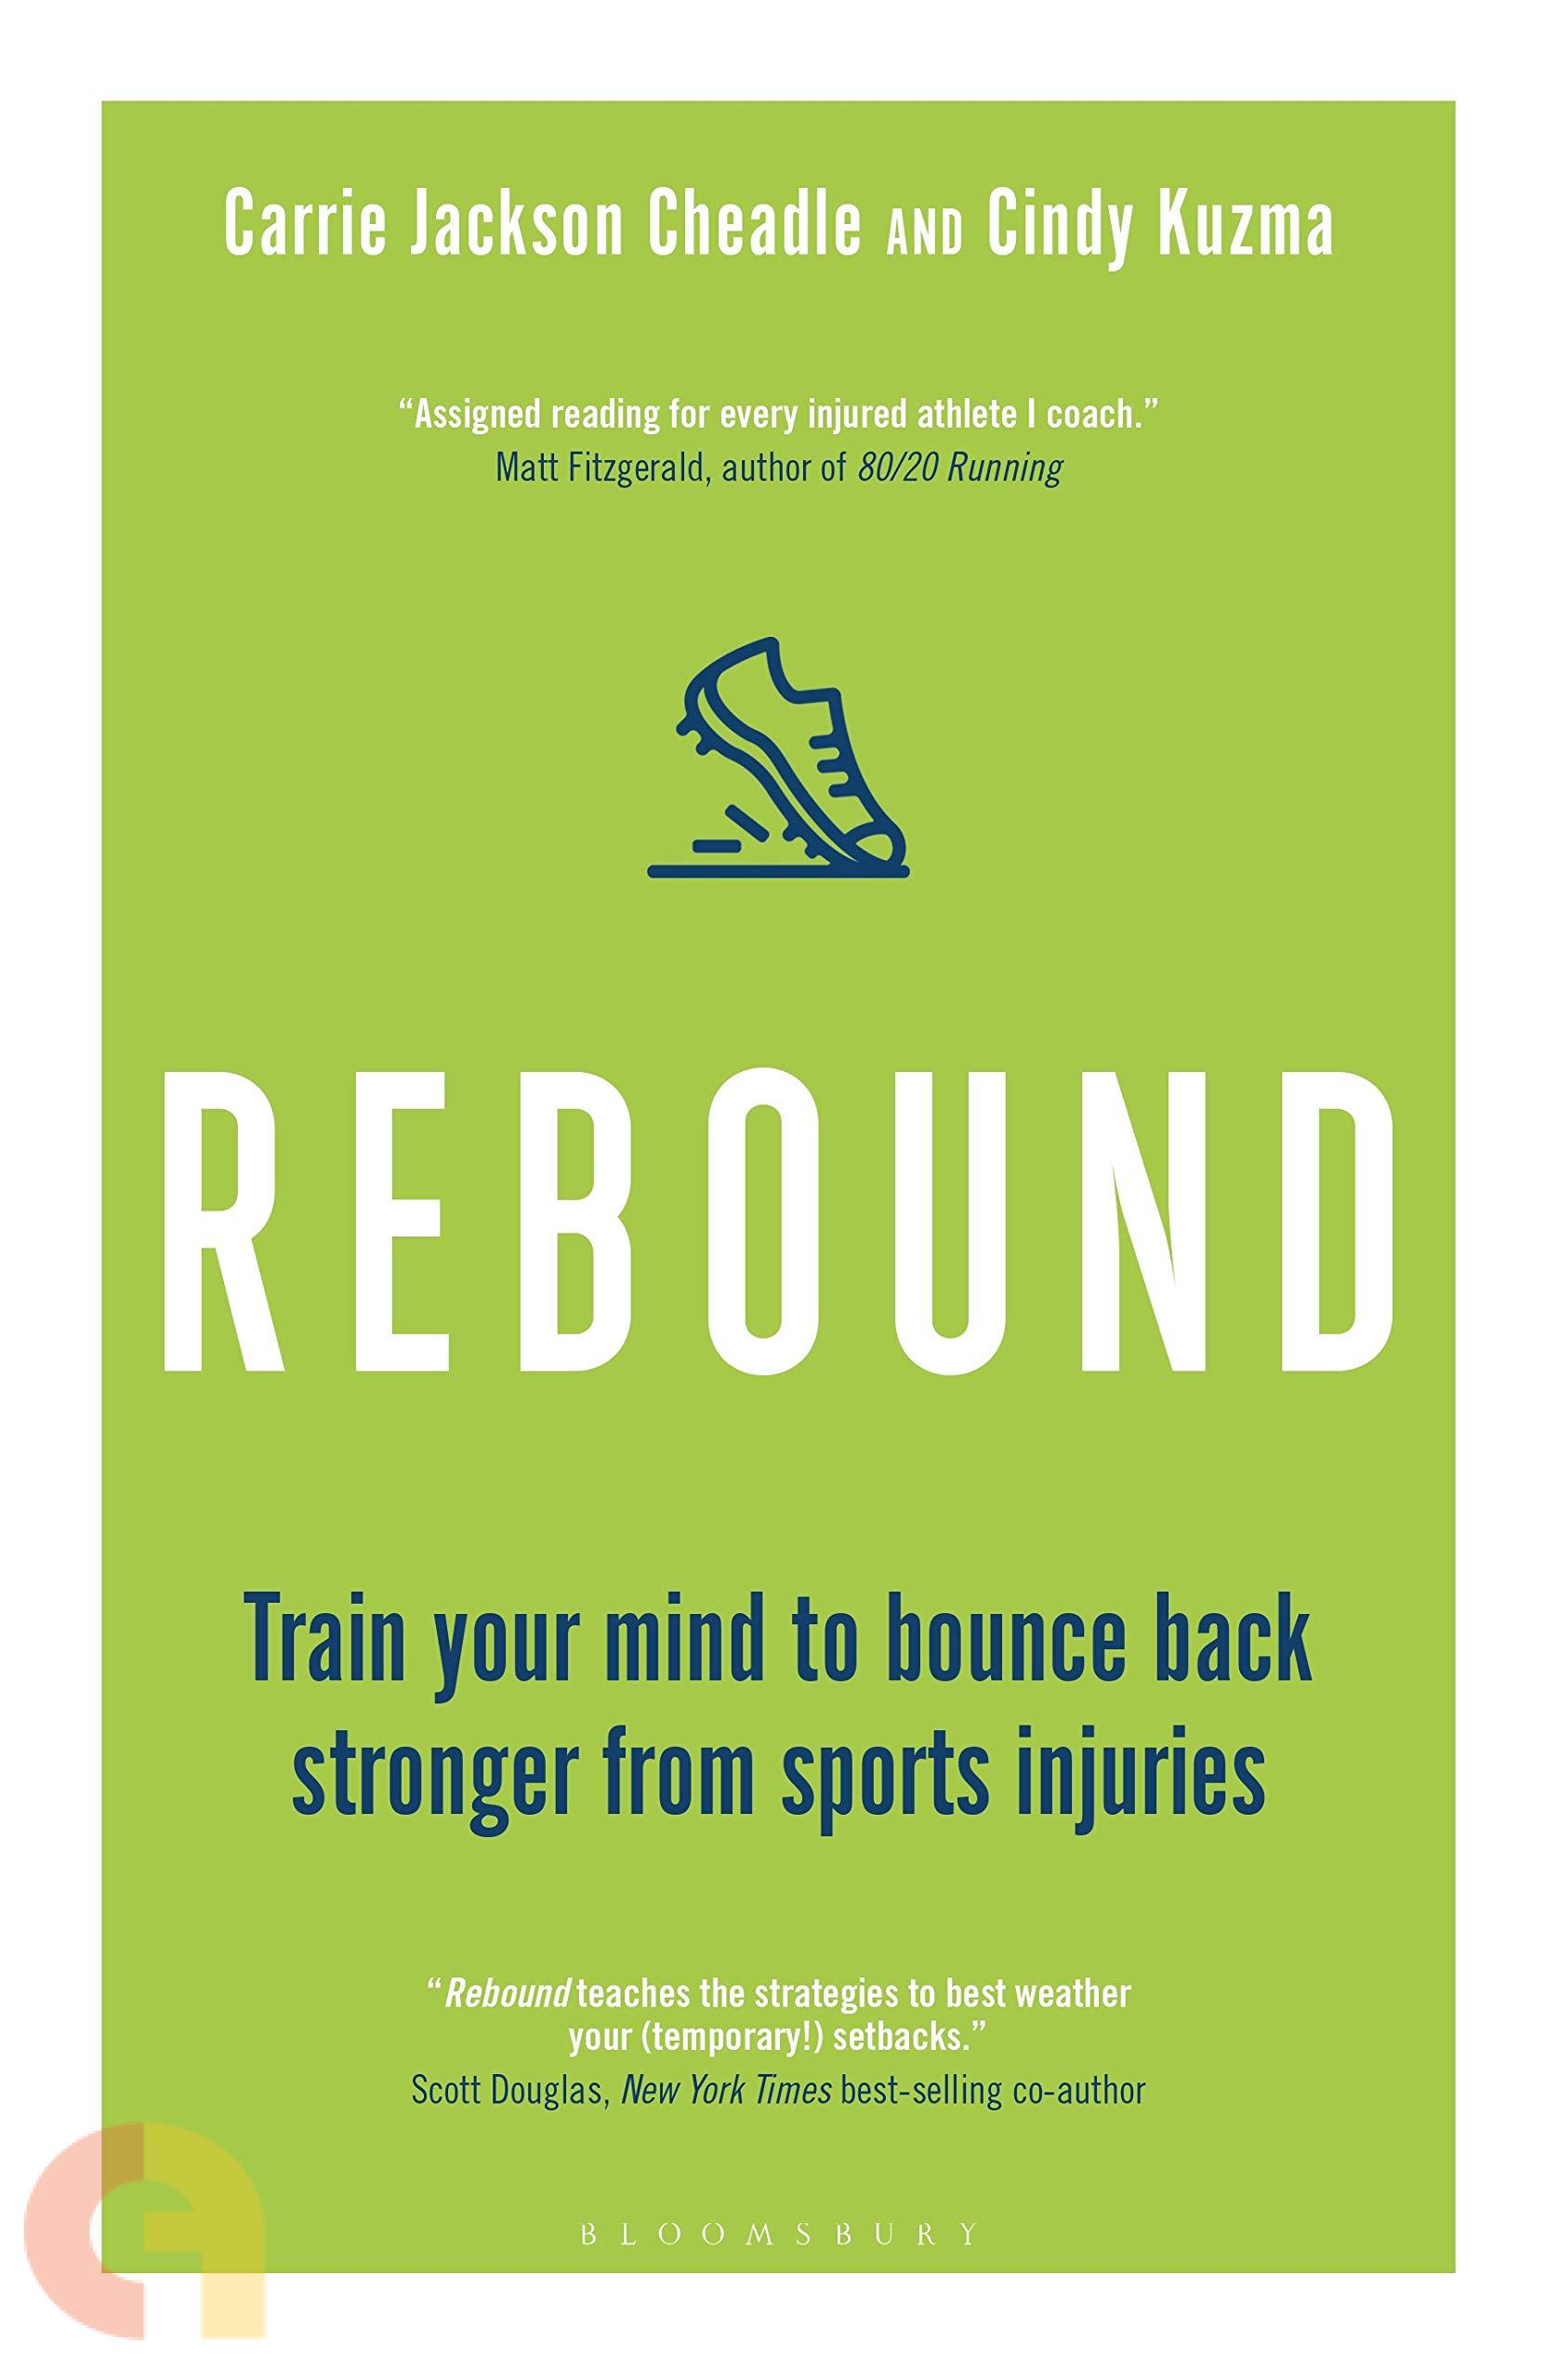 Rebound Training Your Mind To Bounce Back Stronger From Sports Injuries